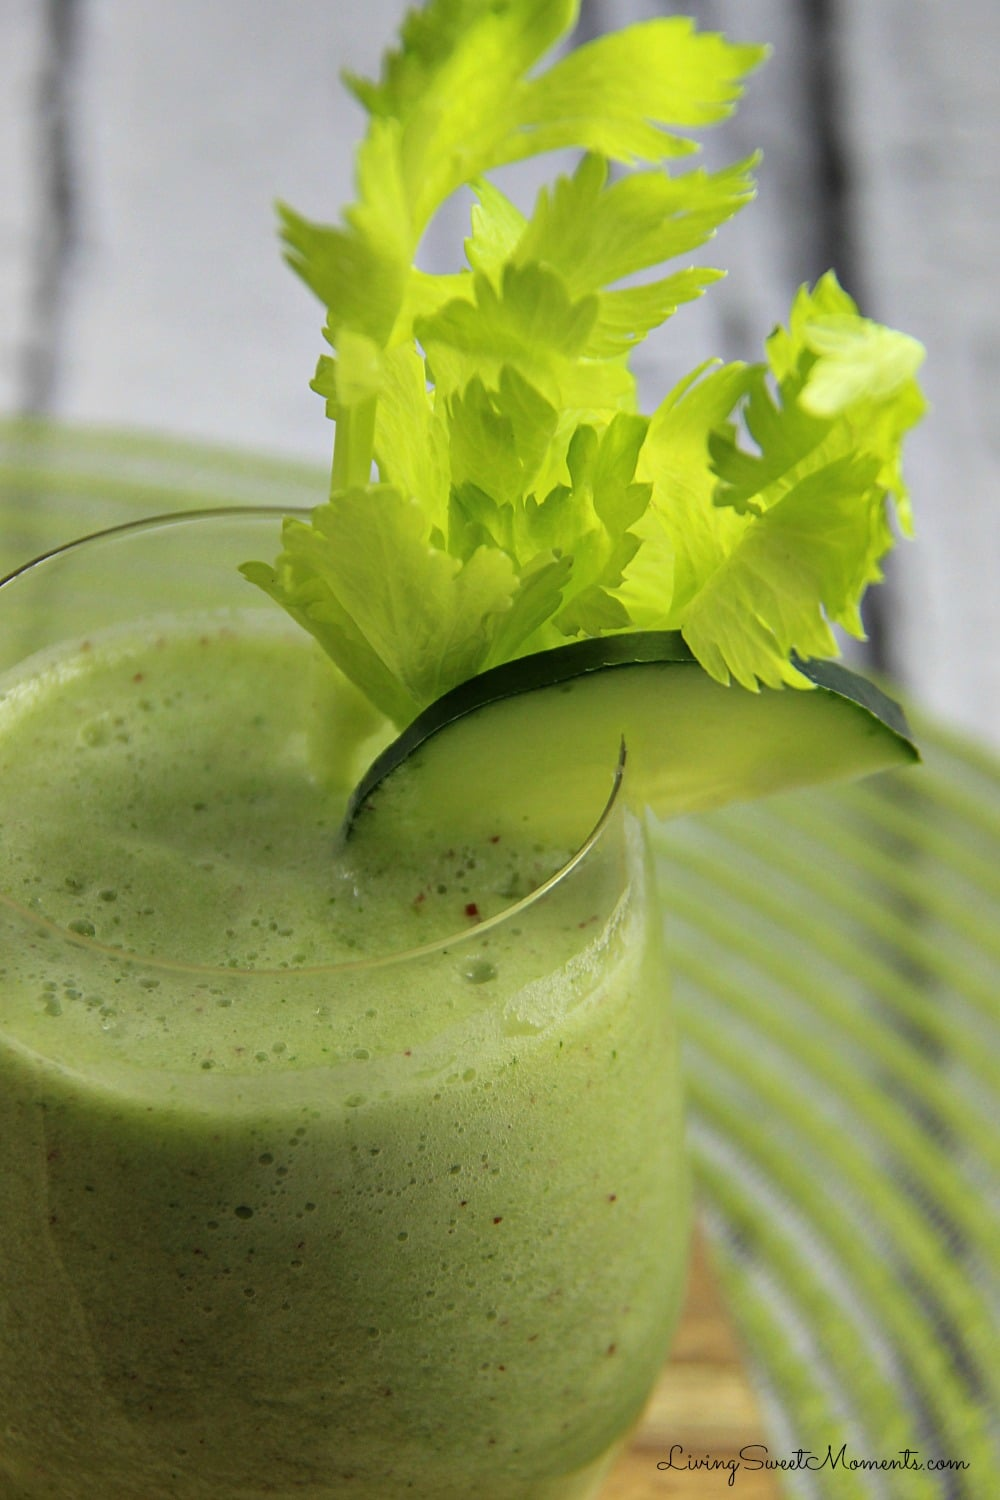 Cucumber-Celery-Ginger-smoothie-1